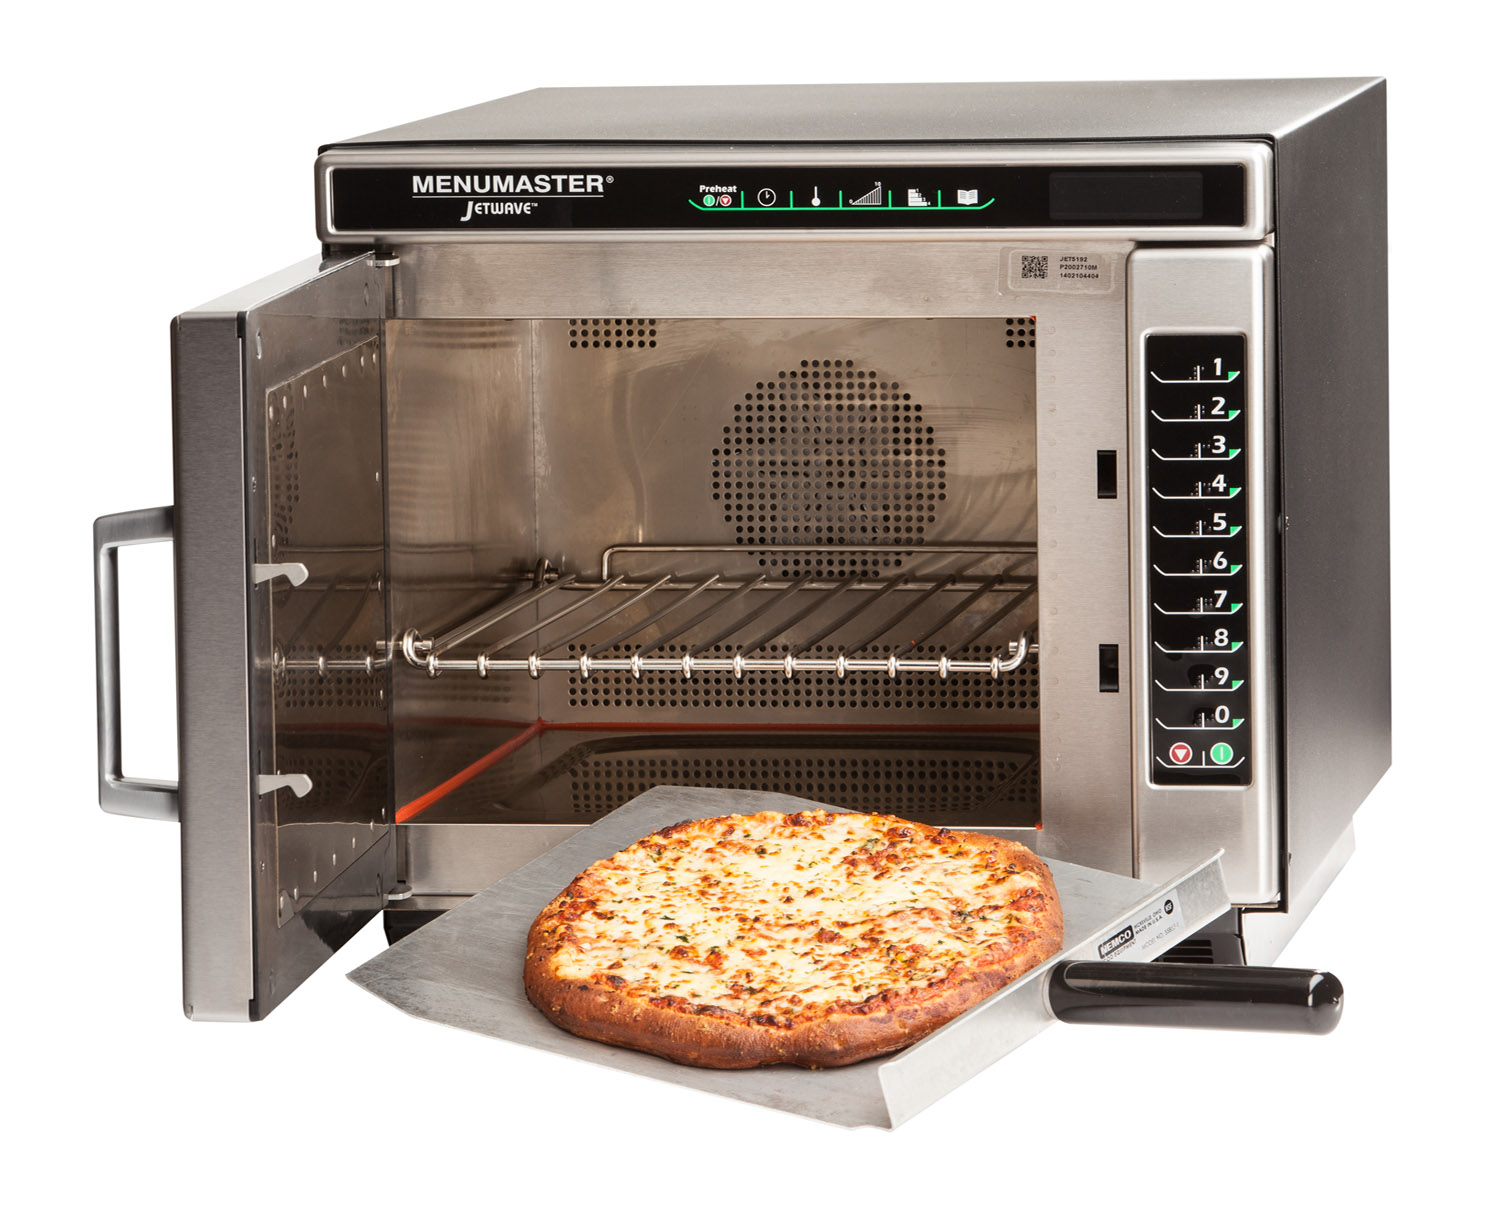 Microwave Convenction Oven All American Restaurant Equipment